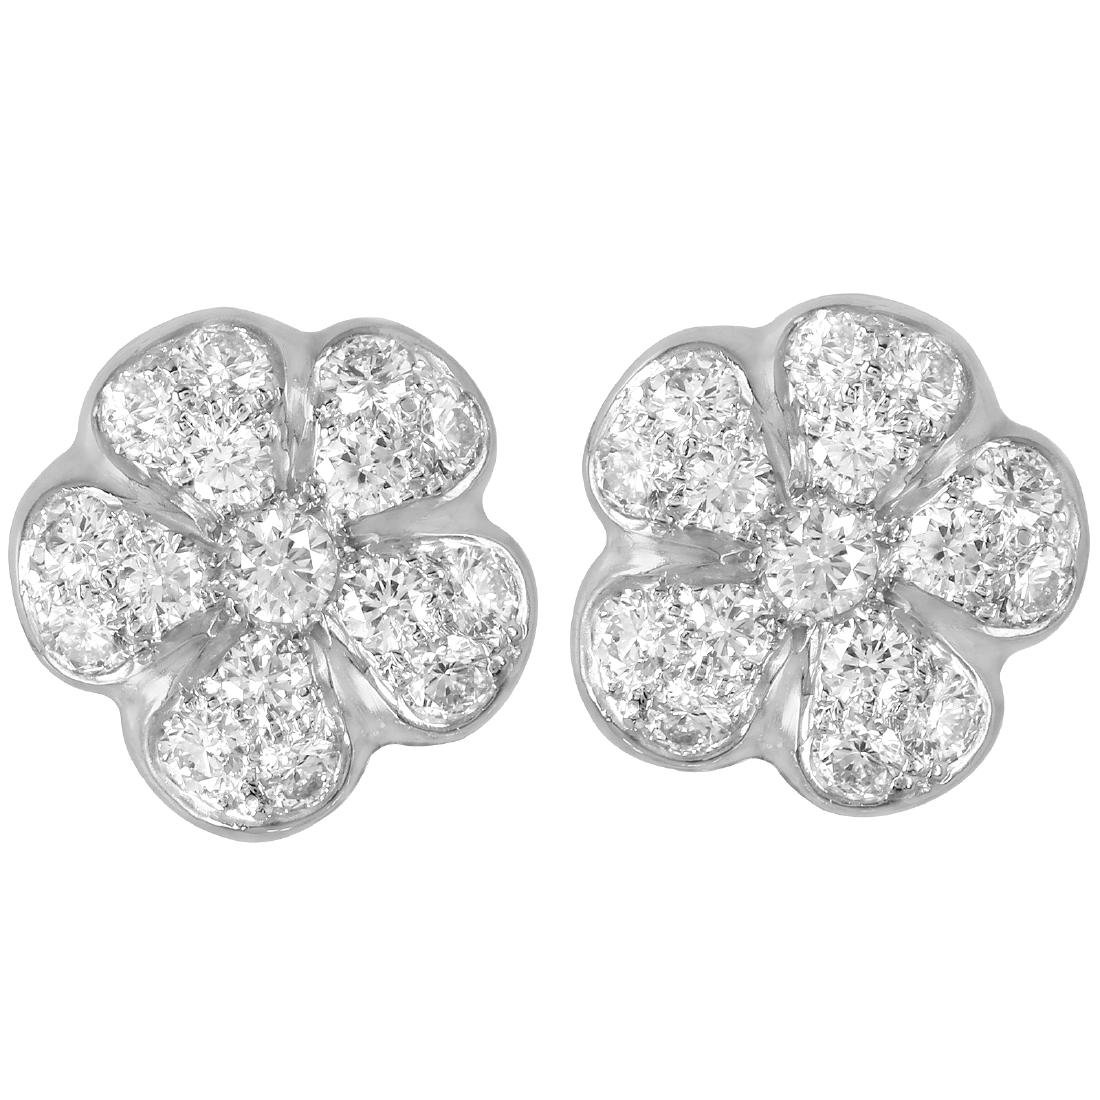 Platinum 18KT Gold Diamond Stud Earrings